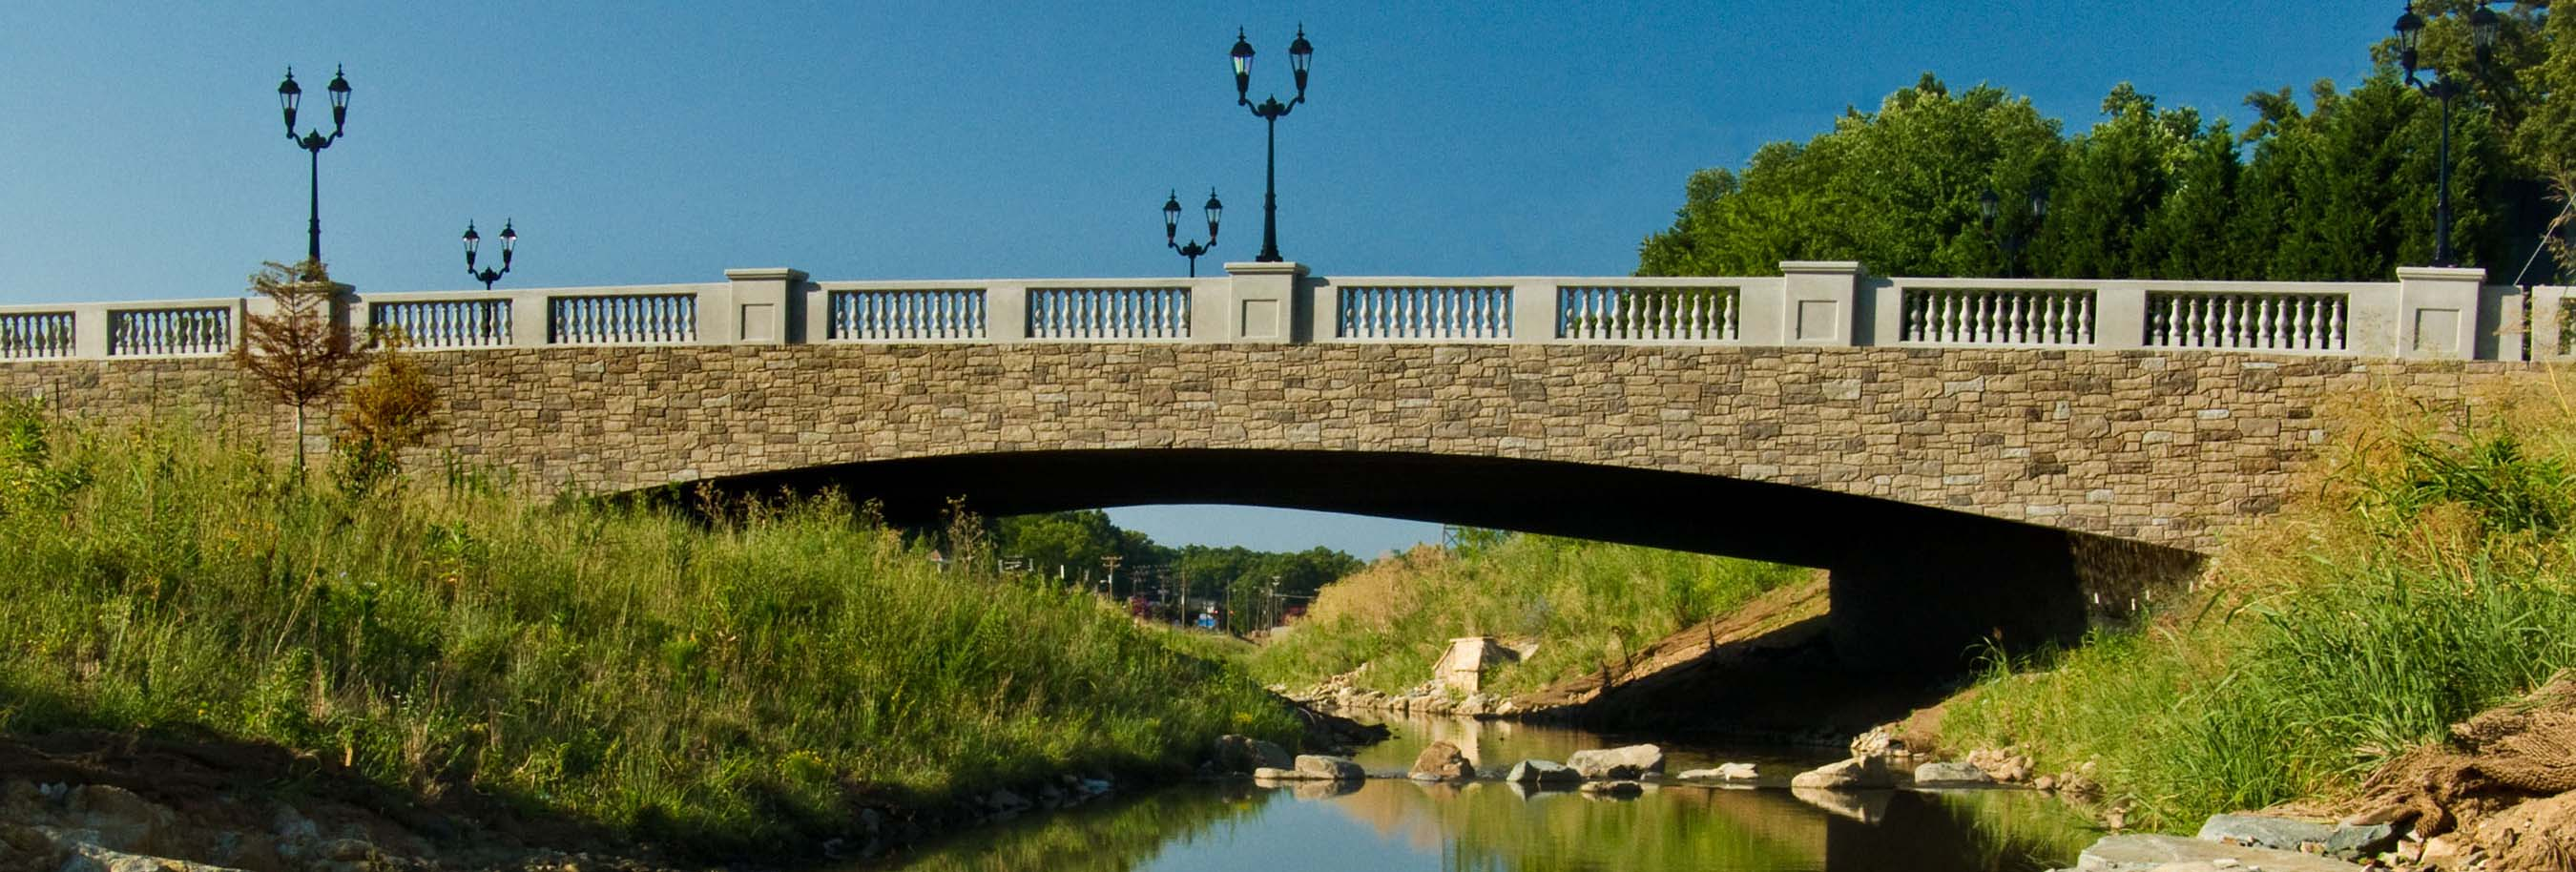 Pearl Park Way Bridge photo- web.jpg